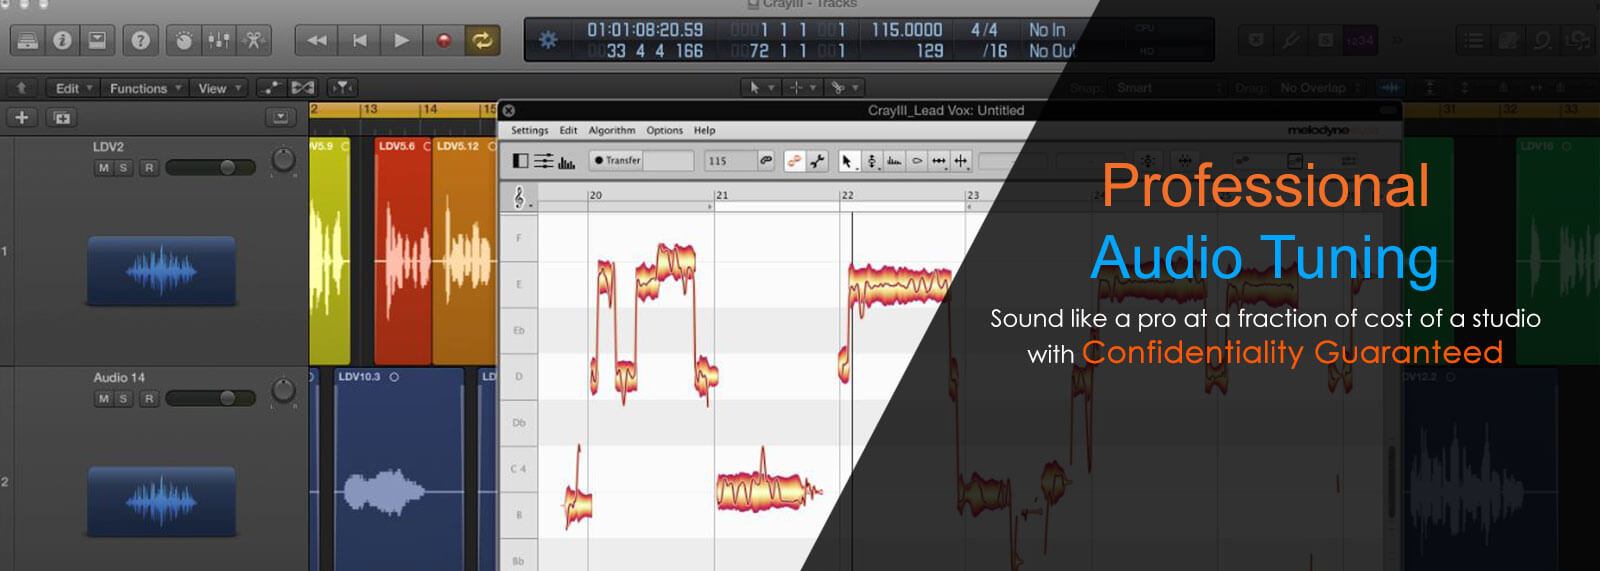 Voice professional quality, Online audio tuning, Vocal tuning for amateurs